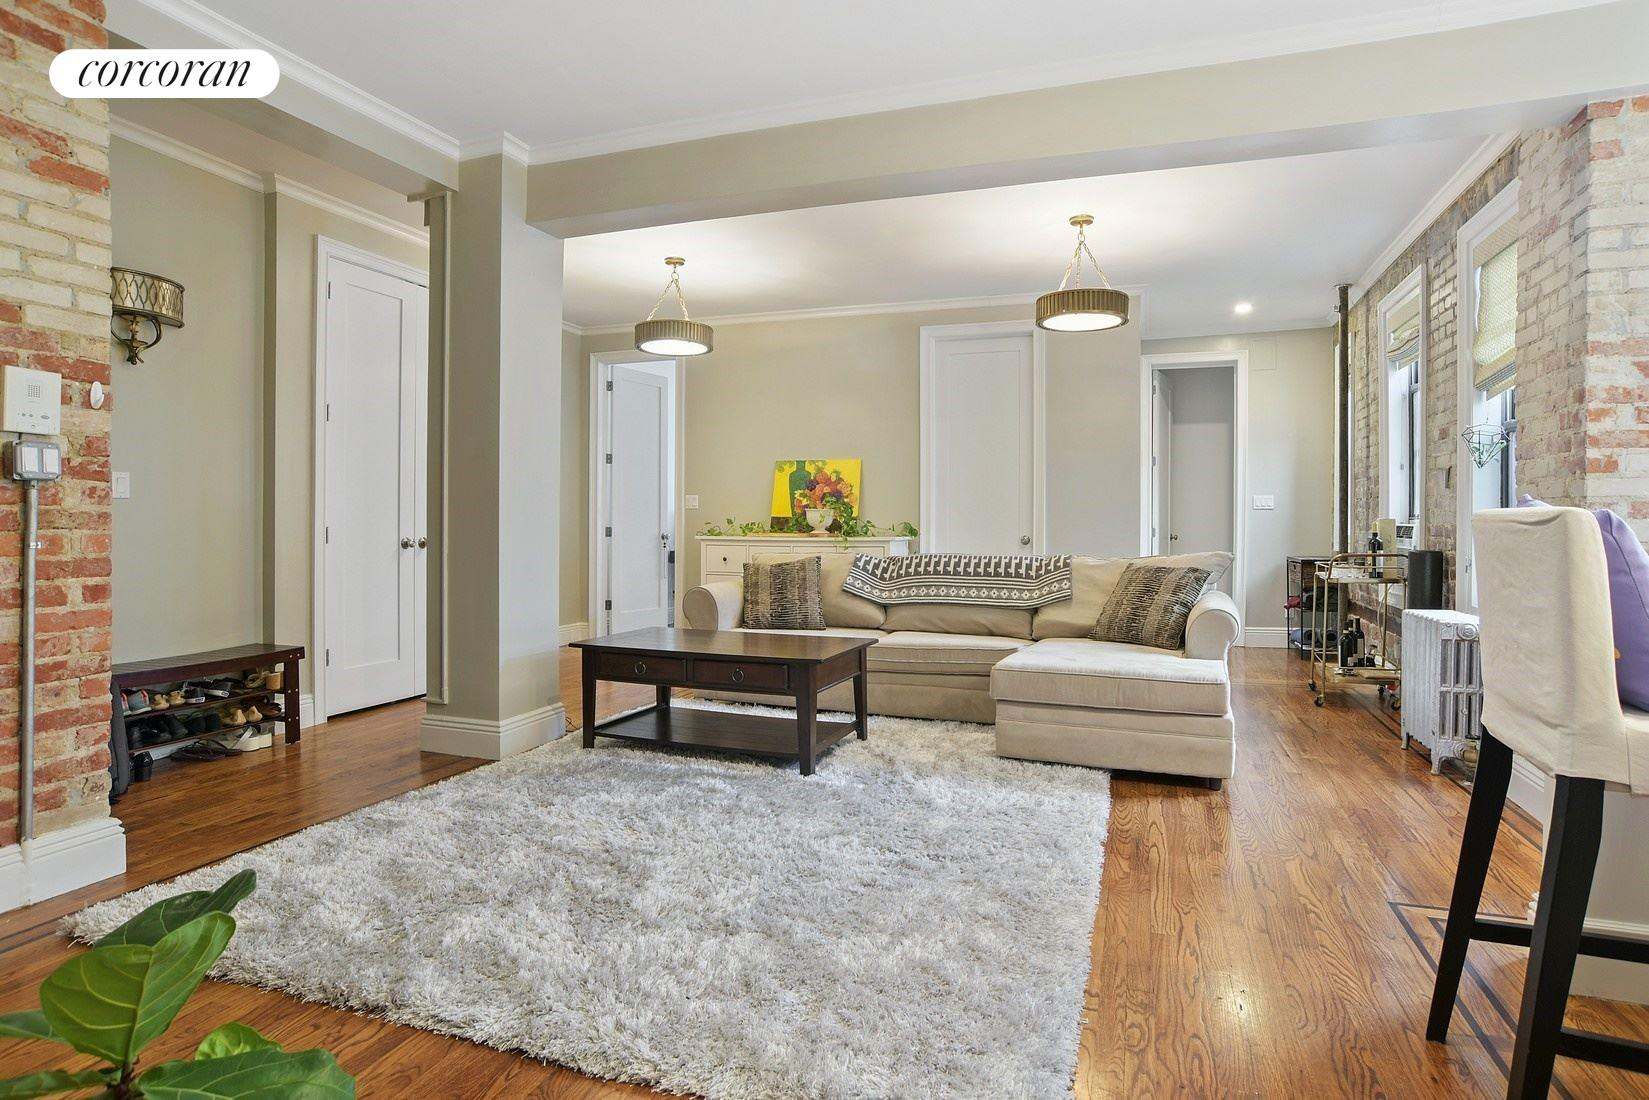 24-75 38th Street, D7/D8, Living Room